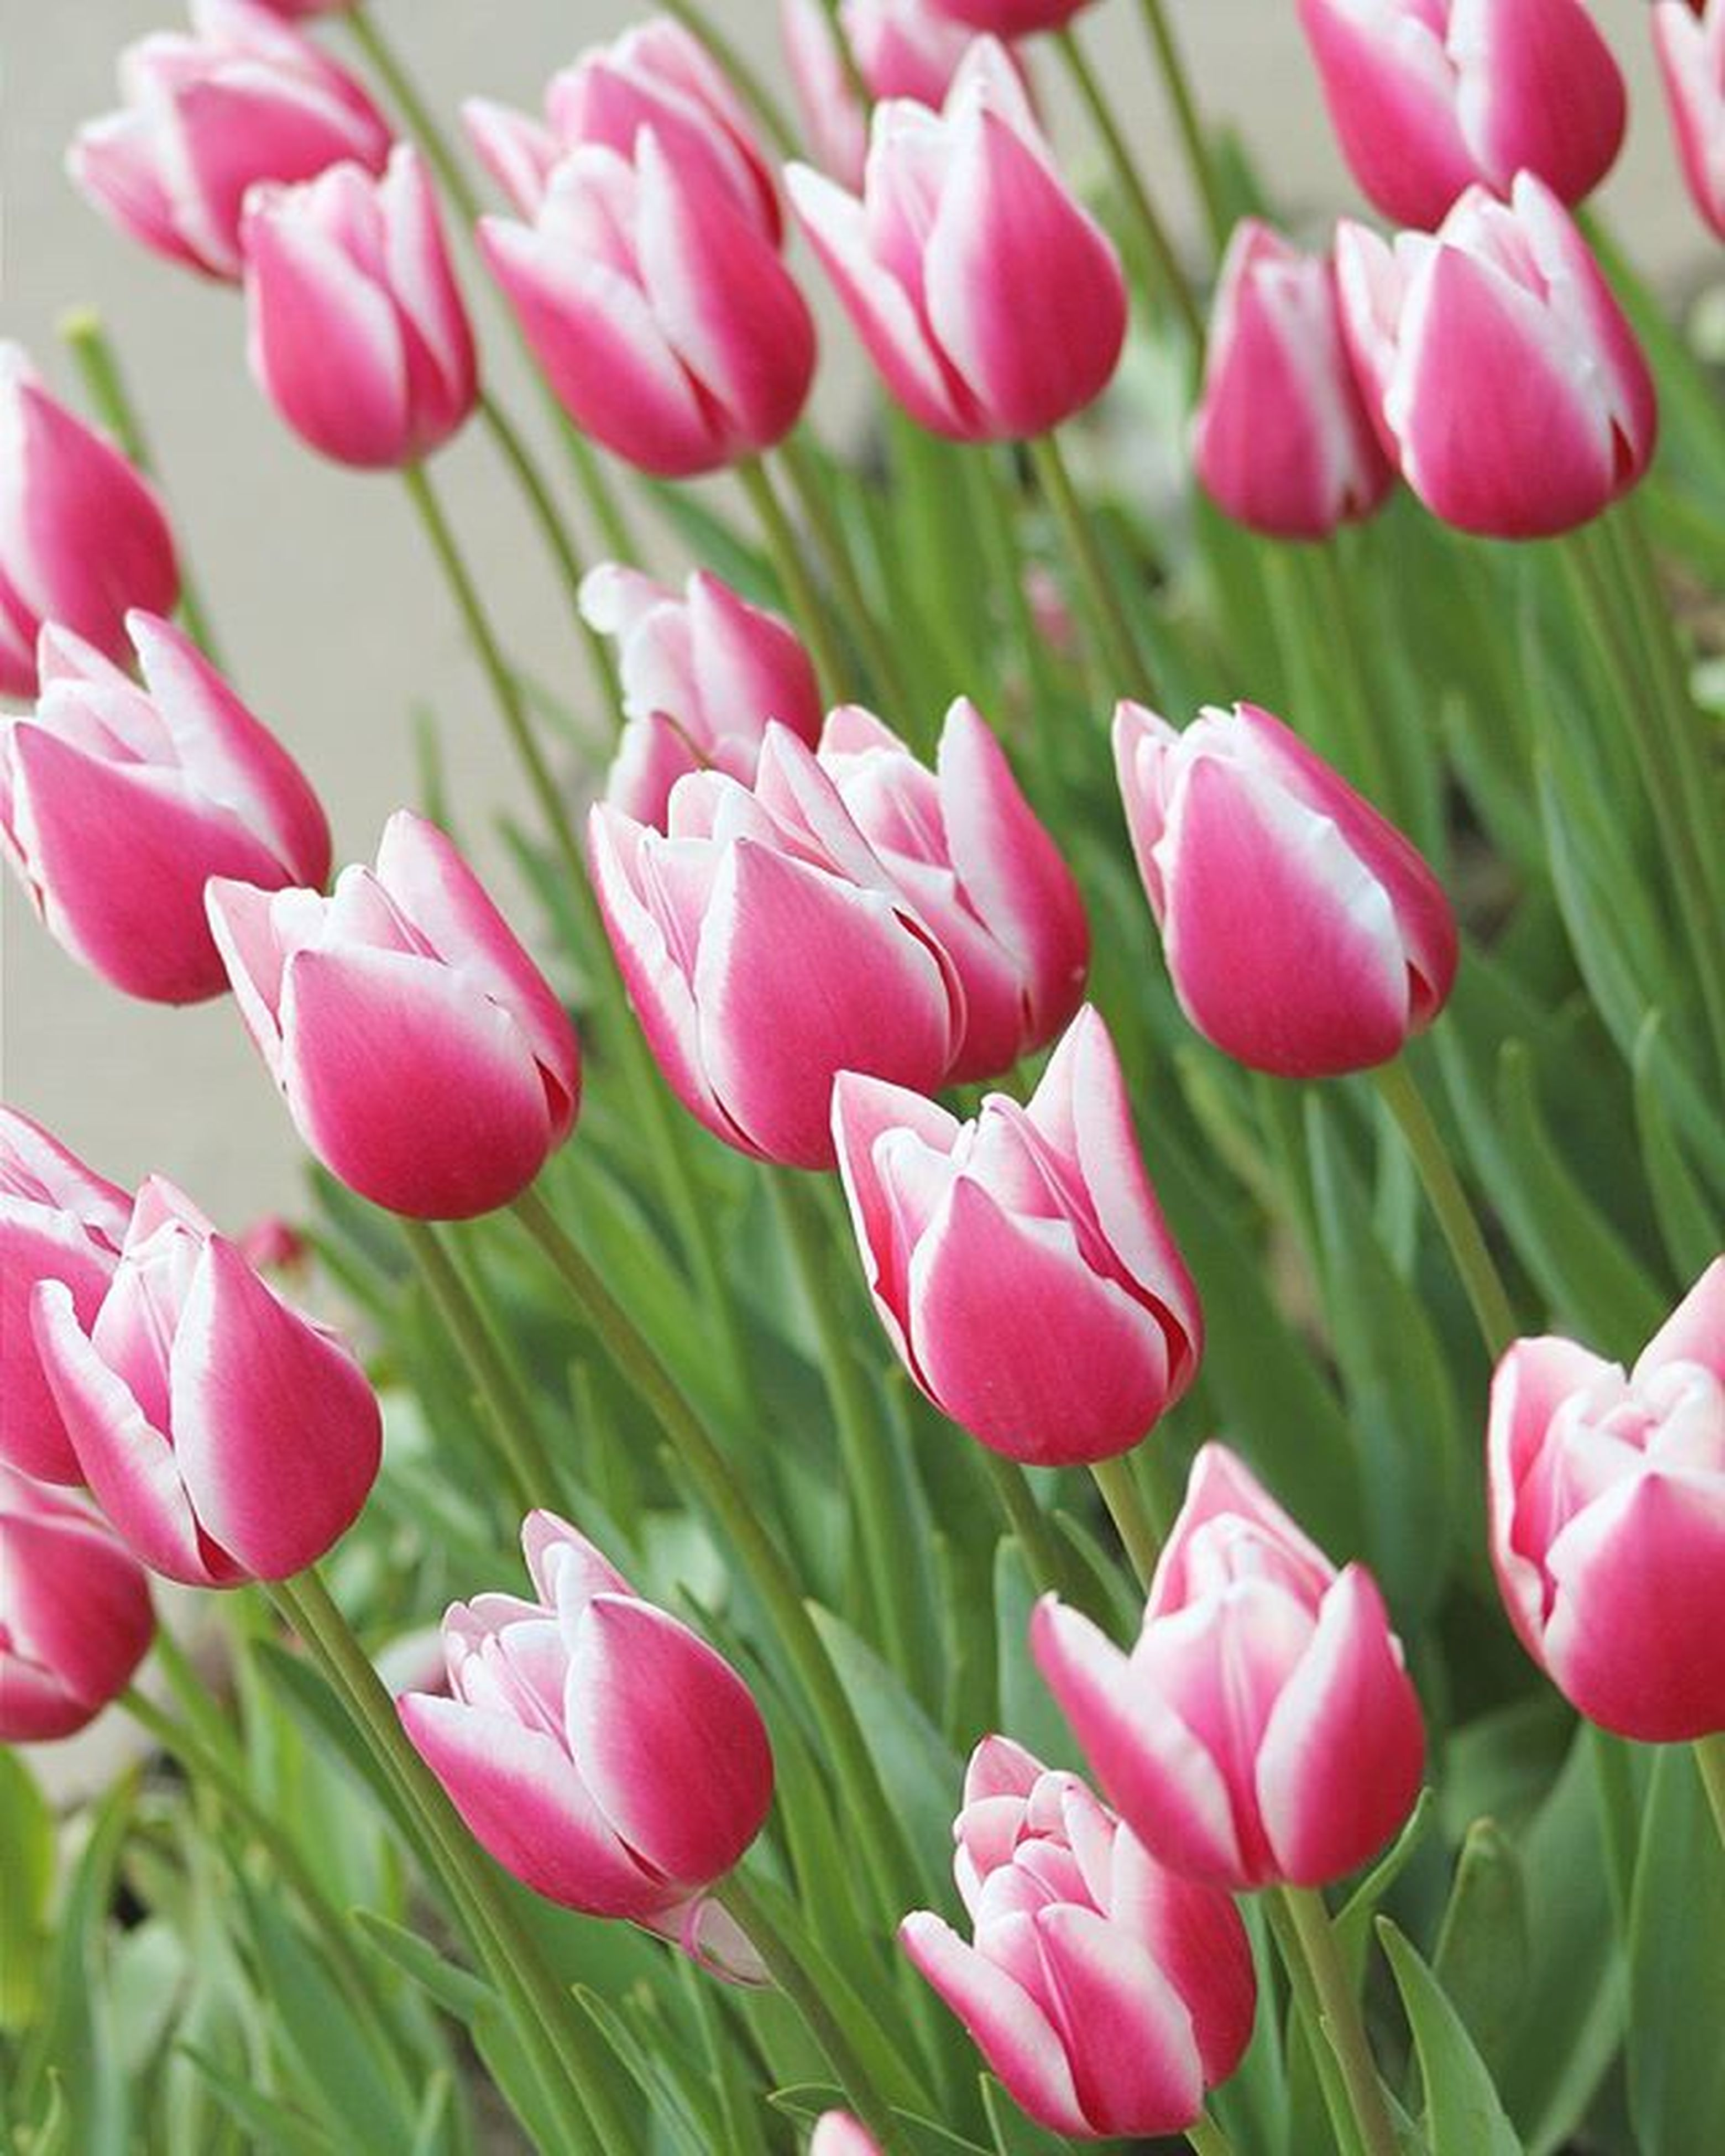 flower, freshness, growth, petal, fragility, beauty in nature, pink color, flower head, plant, nature, blooming, tulip, close-up, field, focus on foreground, stem, green color, pink, leaf, red